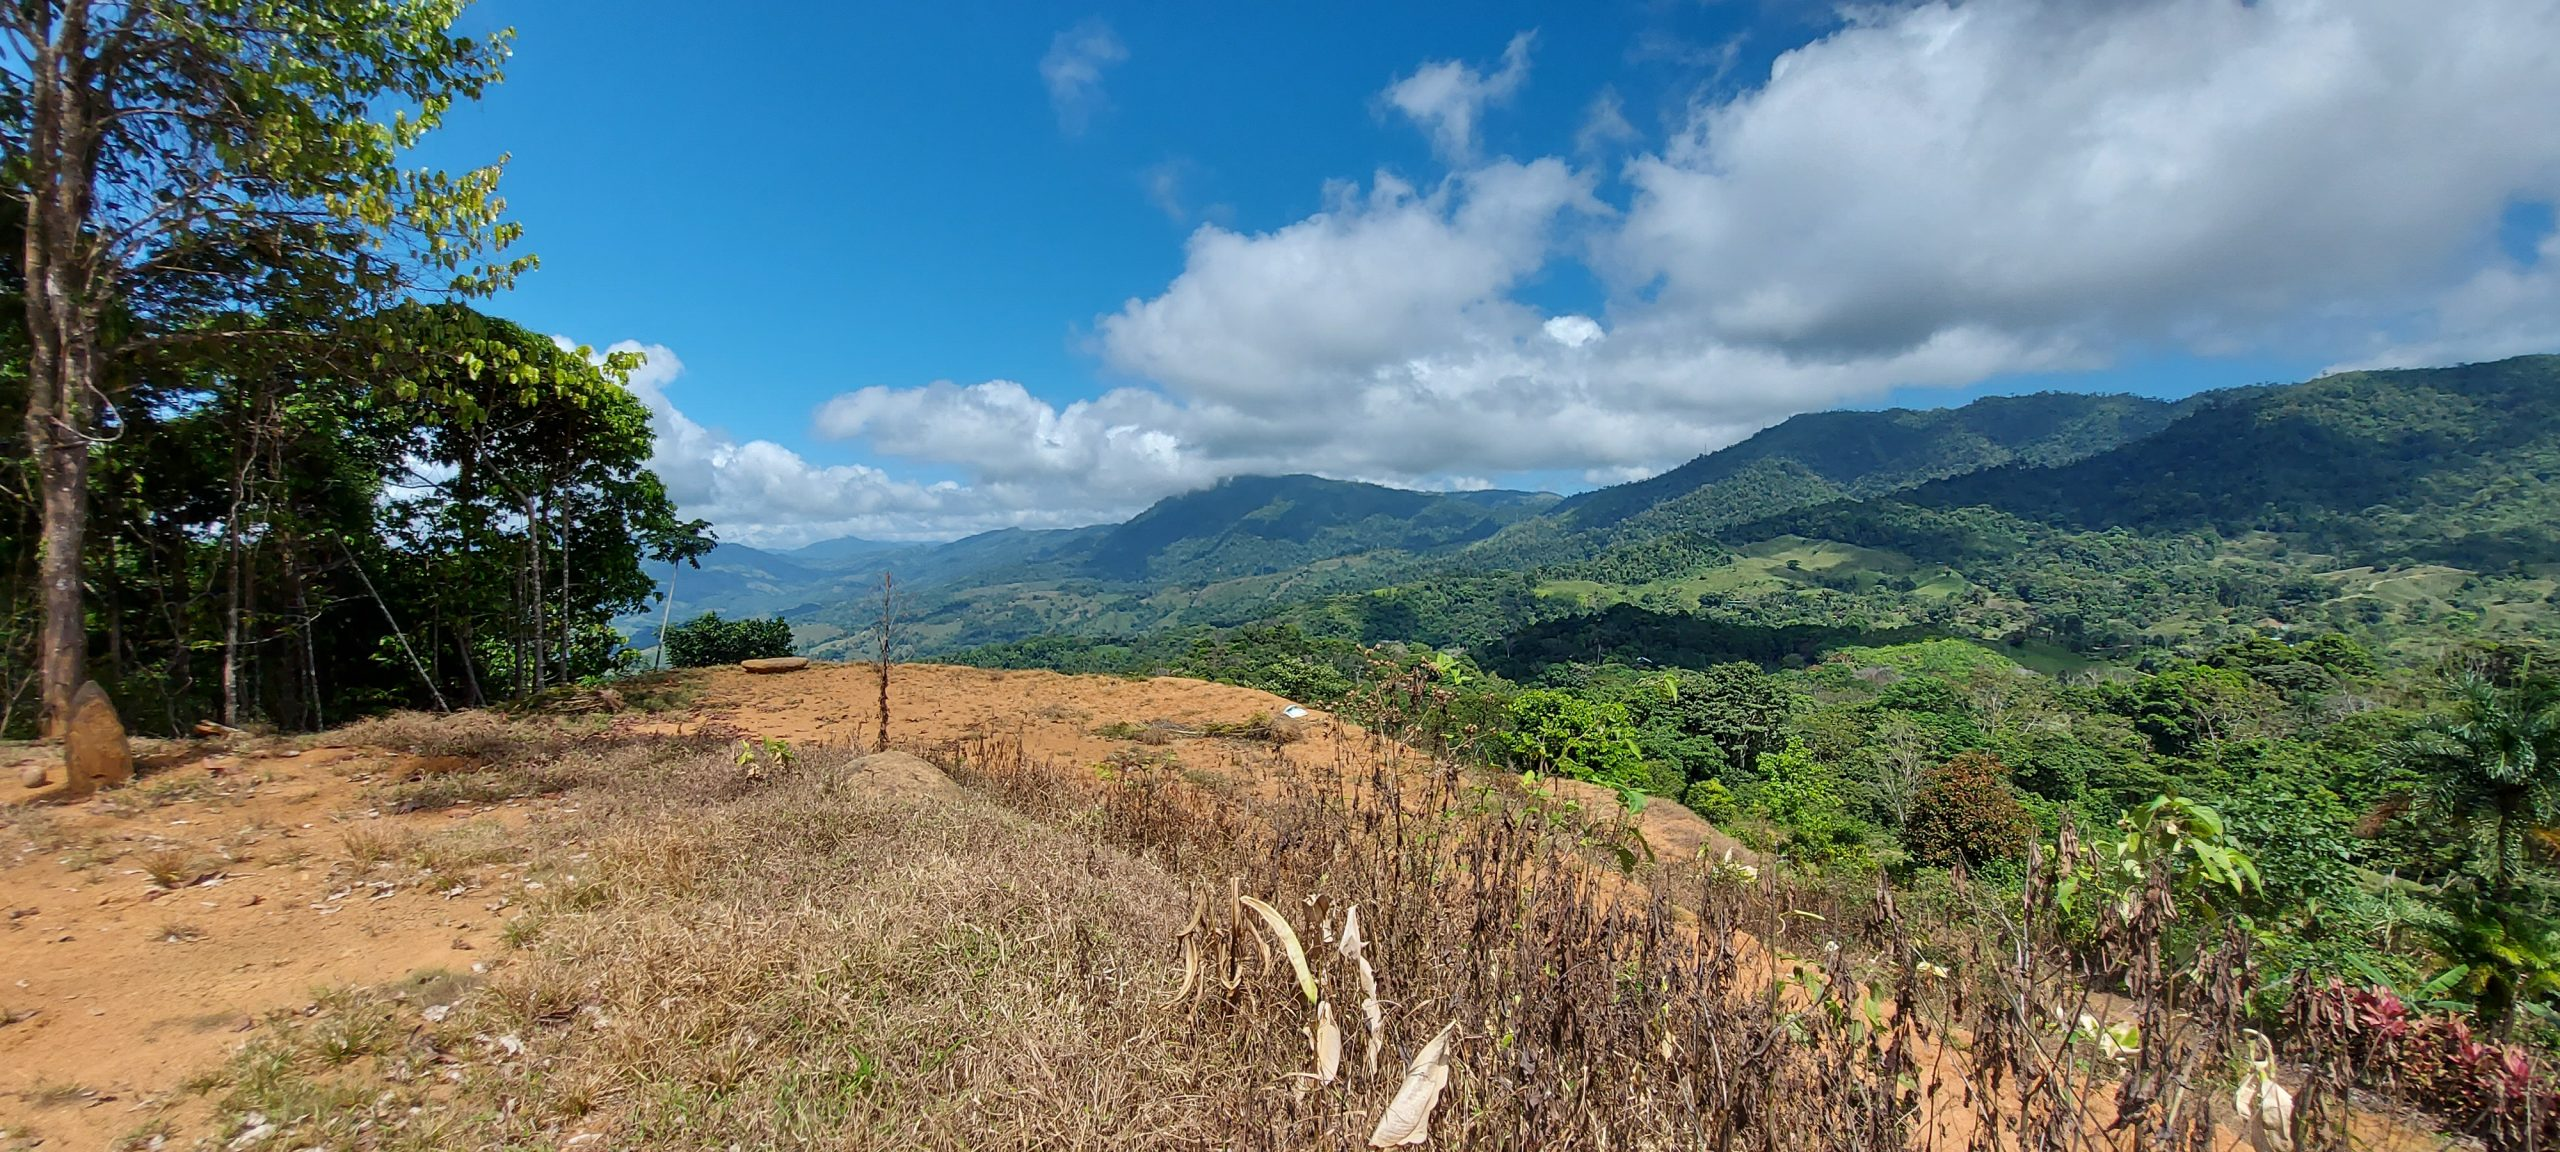 Property with spectacular mountain views and ready construction areas in La Alfombra, Baru